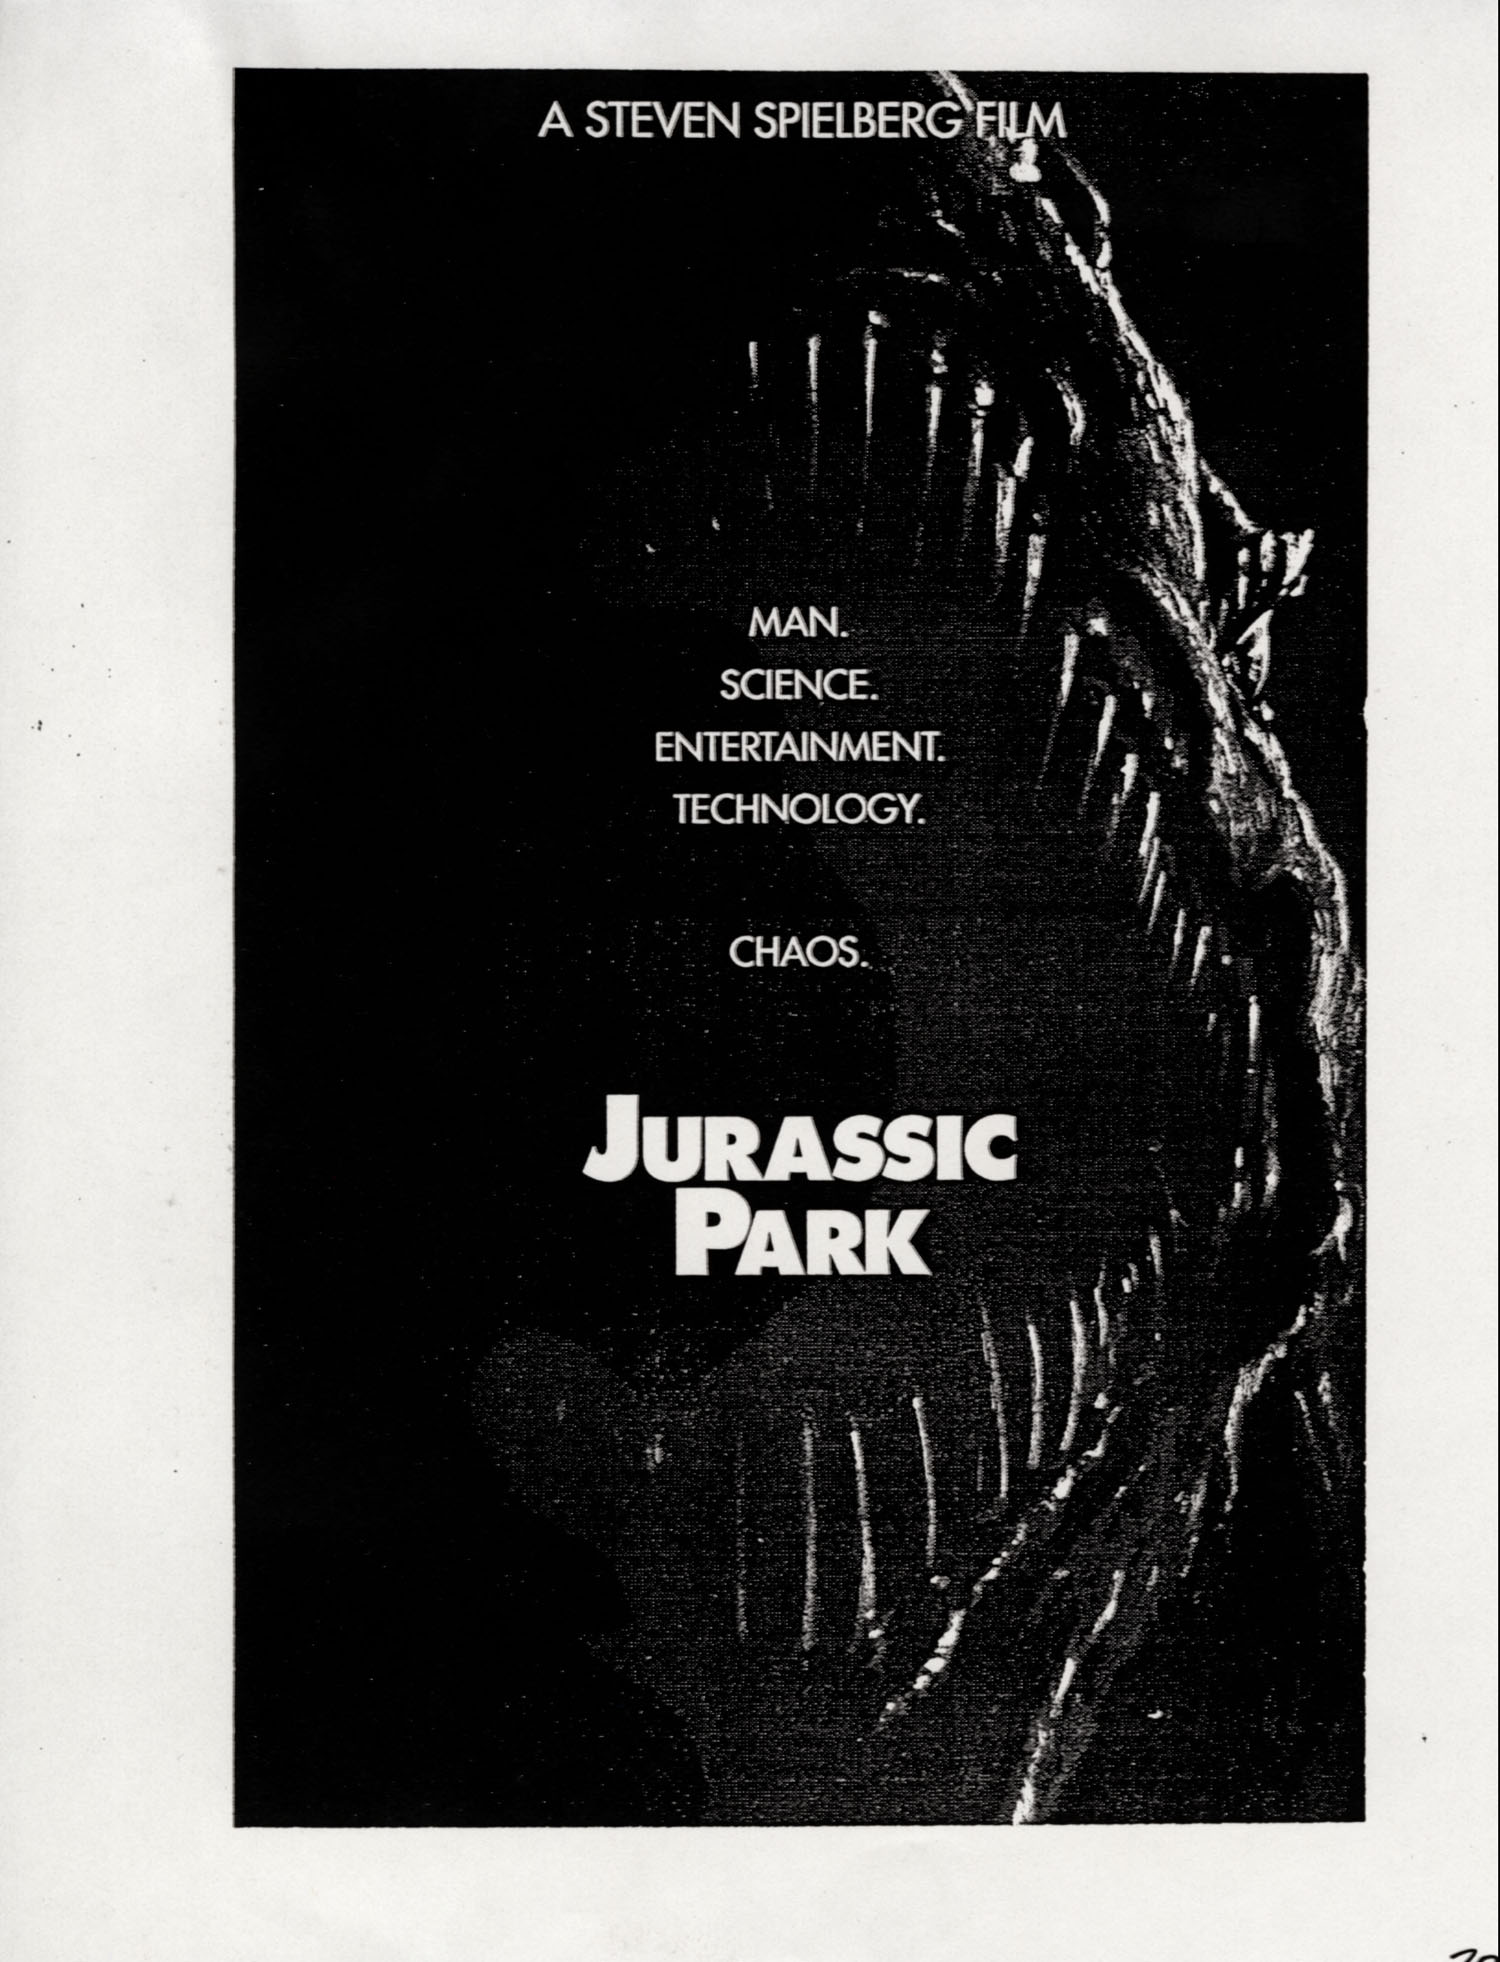 John Alvin   Jurassic Park poster   6 Exclusive: Over a Dozen Never Before Seen Jurassic Park Posters From Famous Artist John Alvin